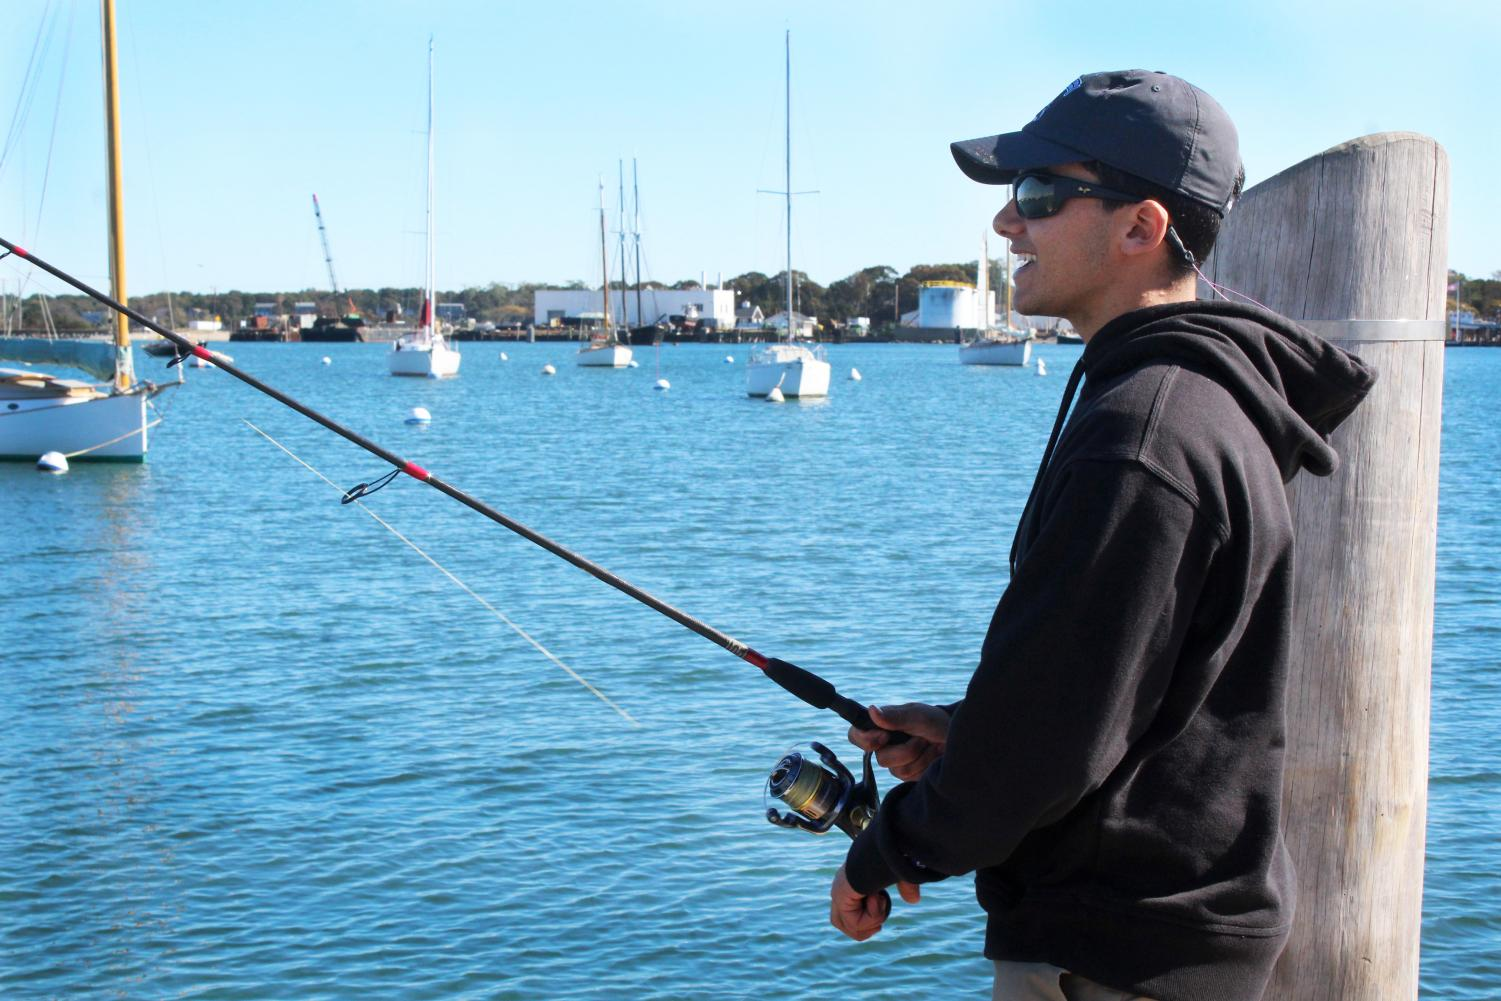 Senior Luke El-deiry fishes on the last day of the Martha's Vineyard Striped Bass and Bluefish Derby at the Owen Park pier.